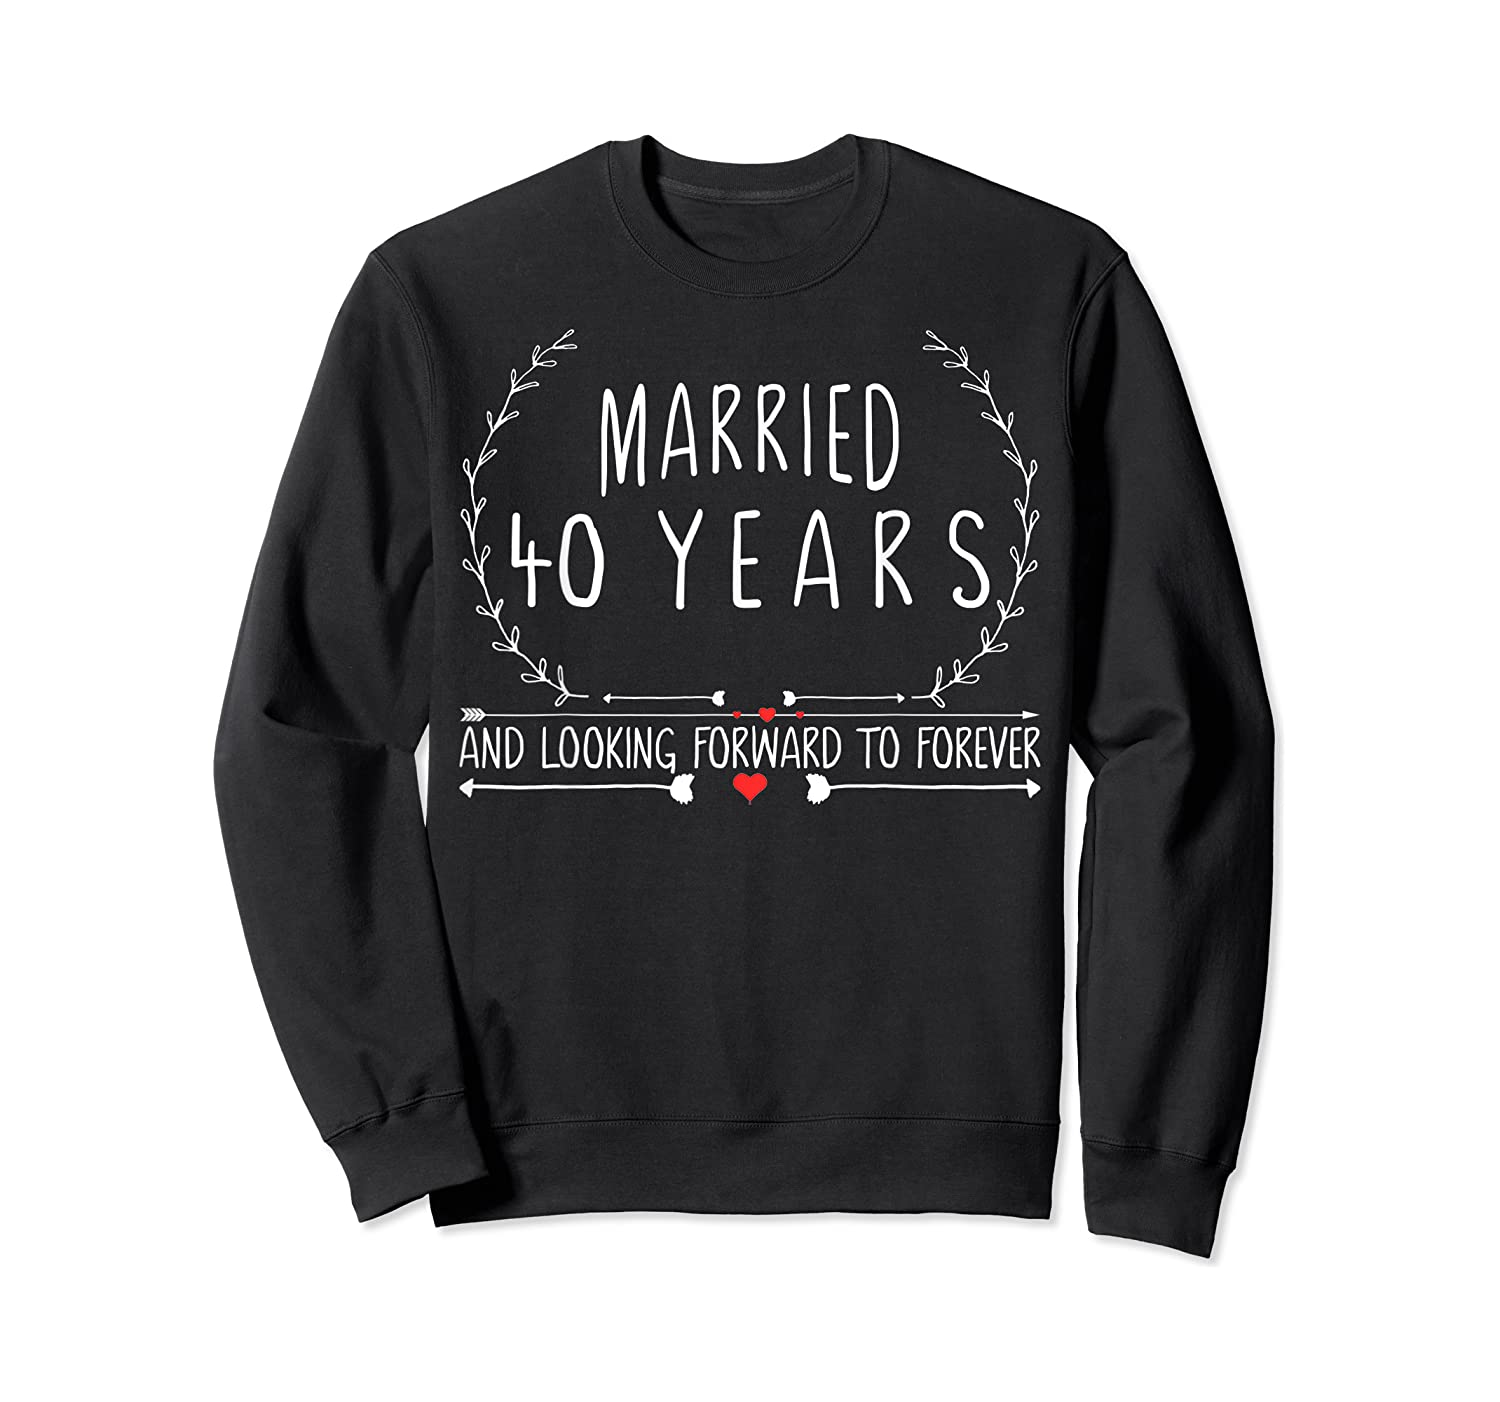 Wedding Anniversary 40th Gifts For Her Him Couples Shirts Crewneck Sweater